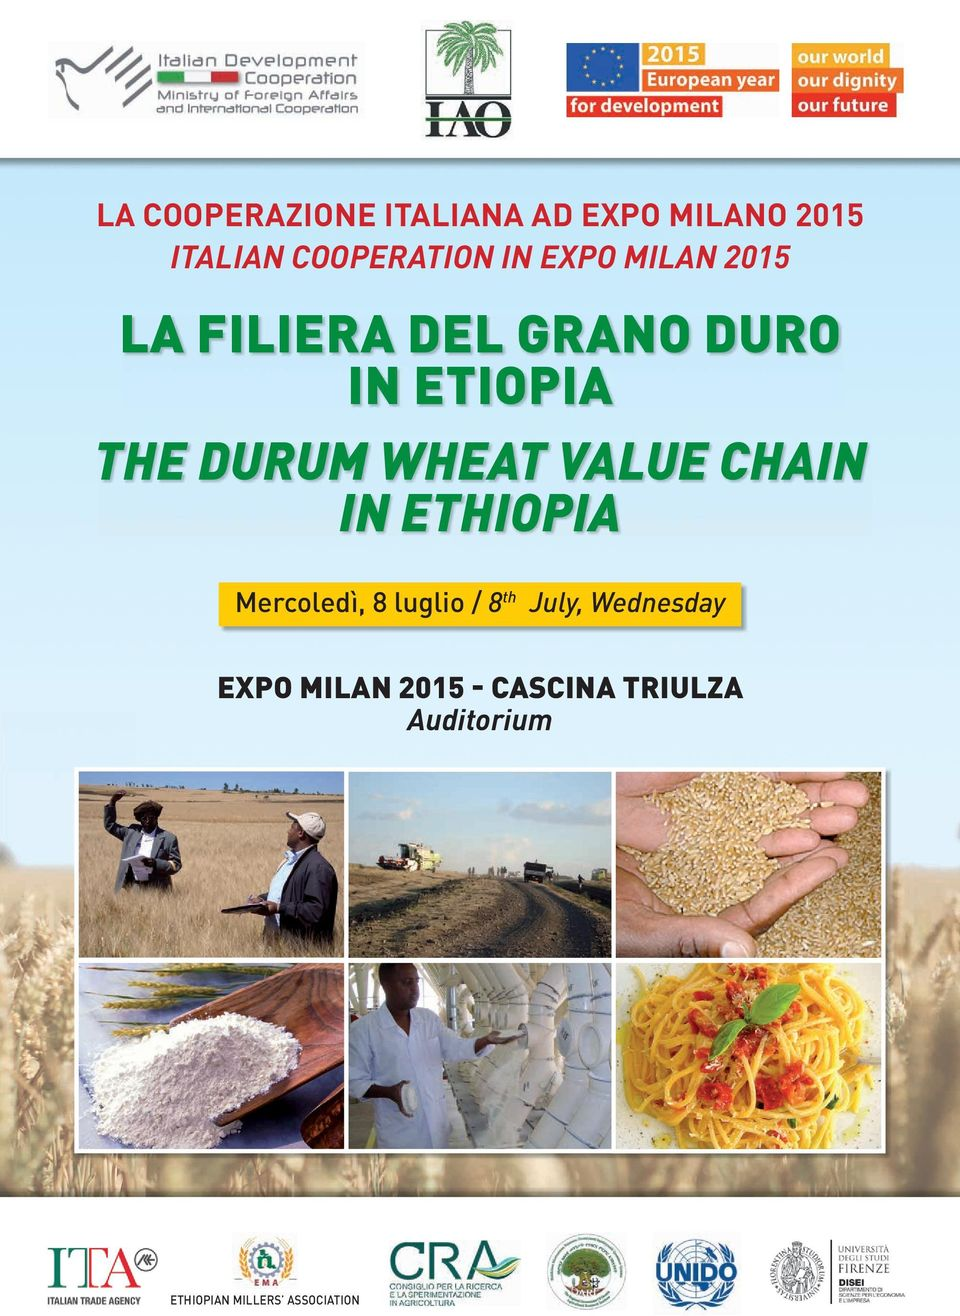 VALUE CHAIN IN ETHIOPIA Mercoledì, 8 luglio / 8th July, Wednesday